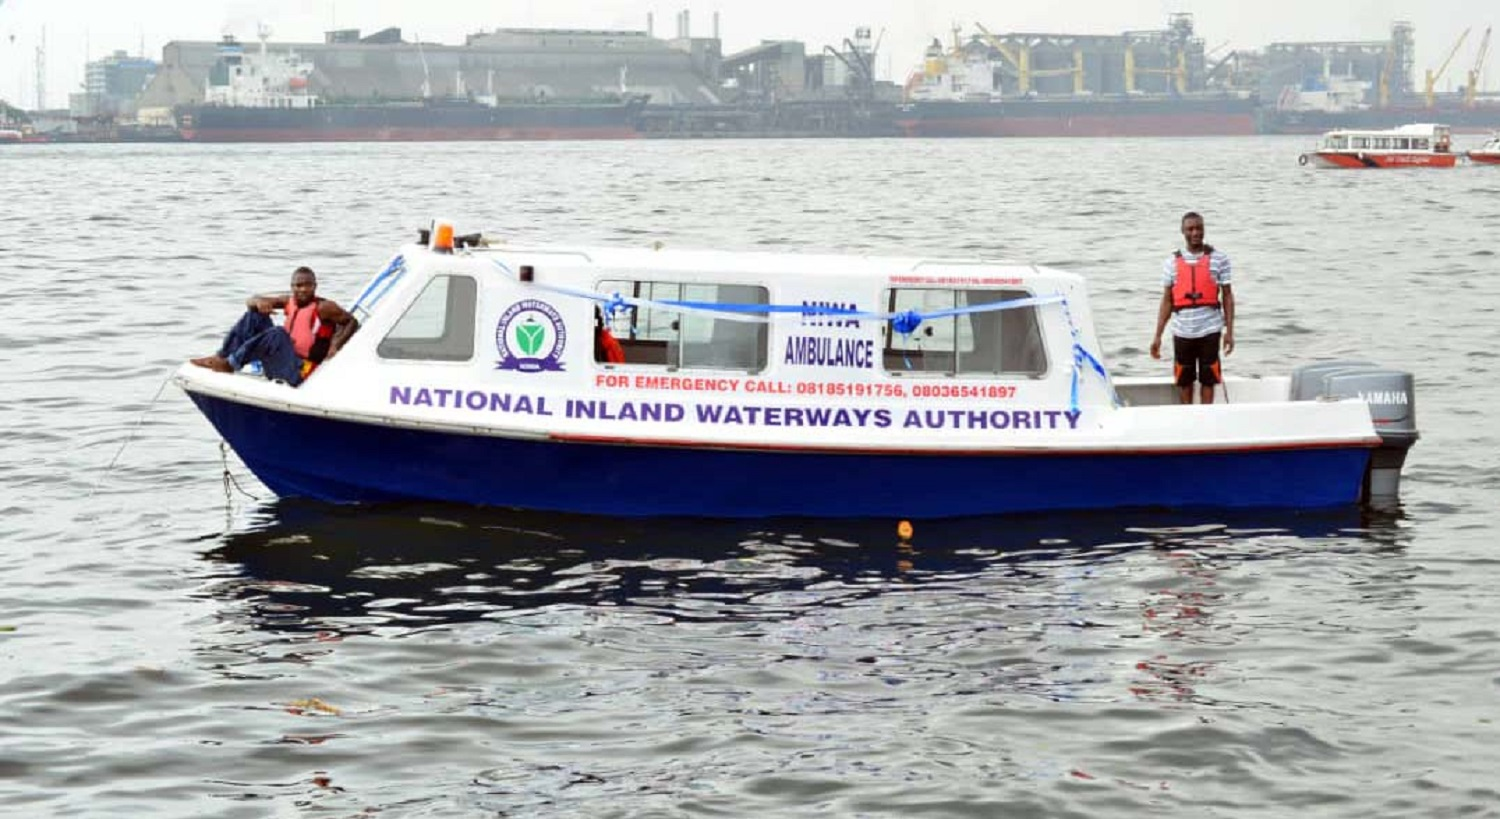 Managing director of NIWA, Chief George Moghalu has said that efforts had been intensified to ensure that Onitsha River Port in...